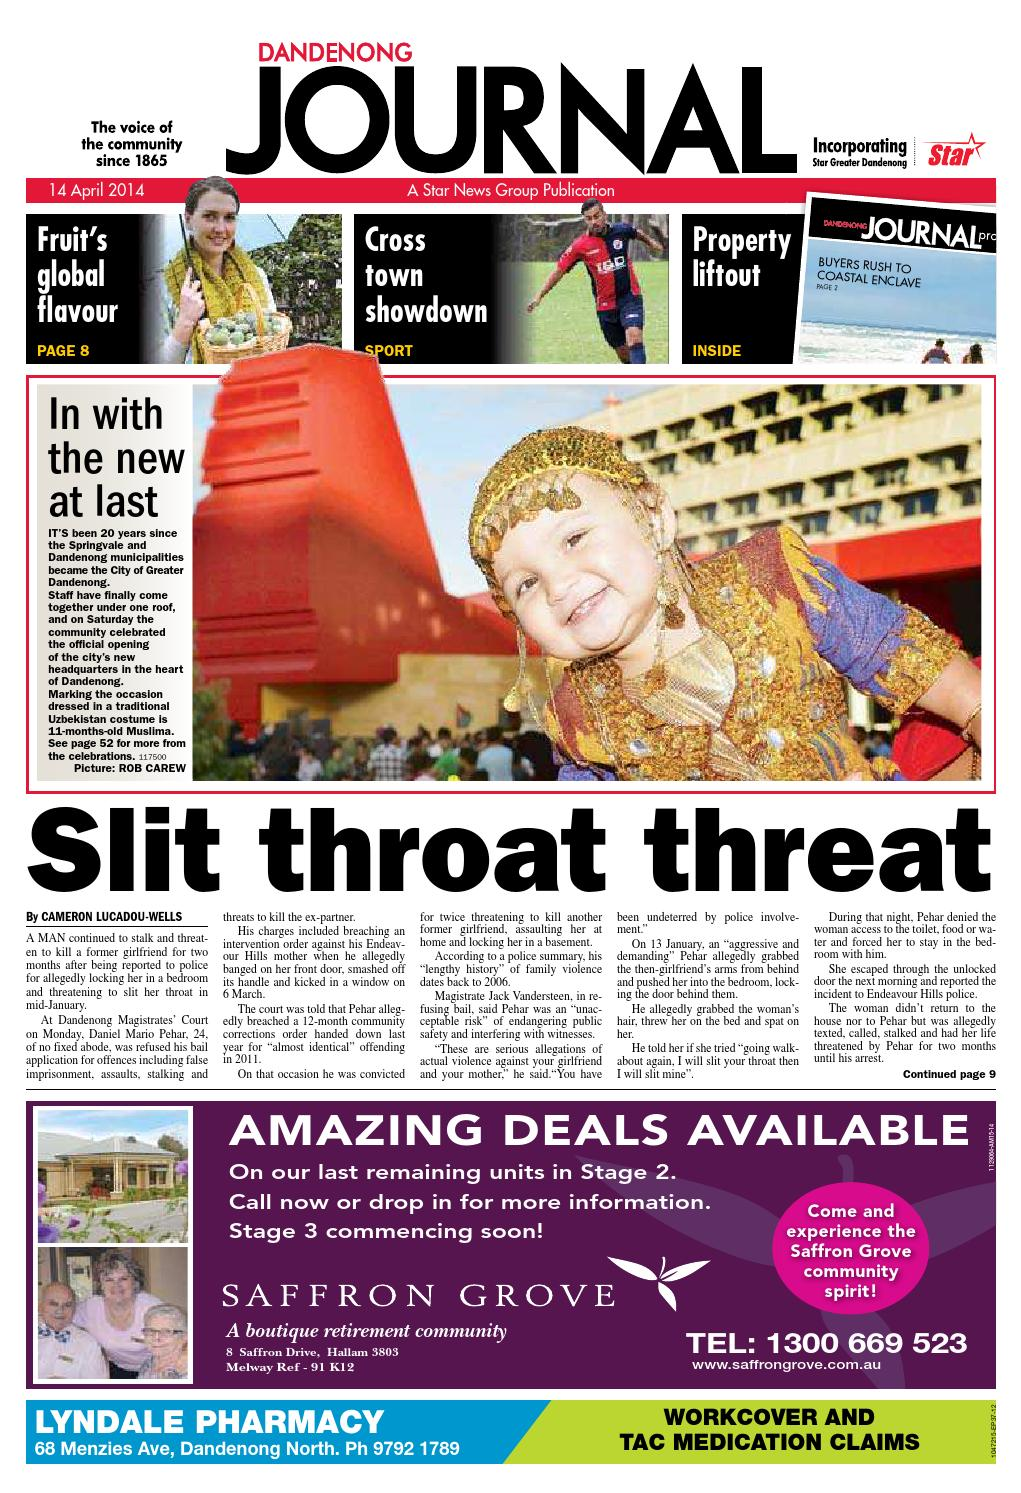 Dandenong Journal Star 14th April 2014 By Star News Group Issuu